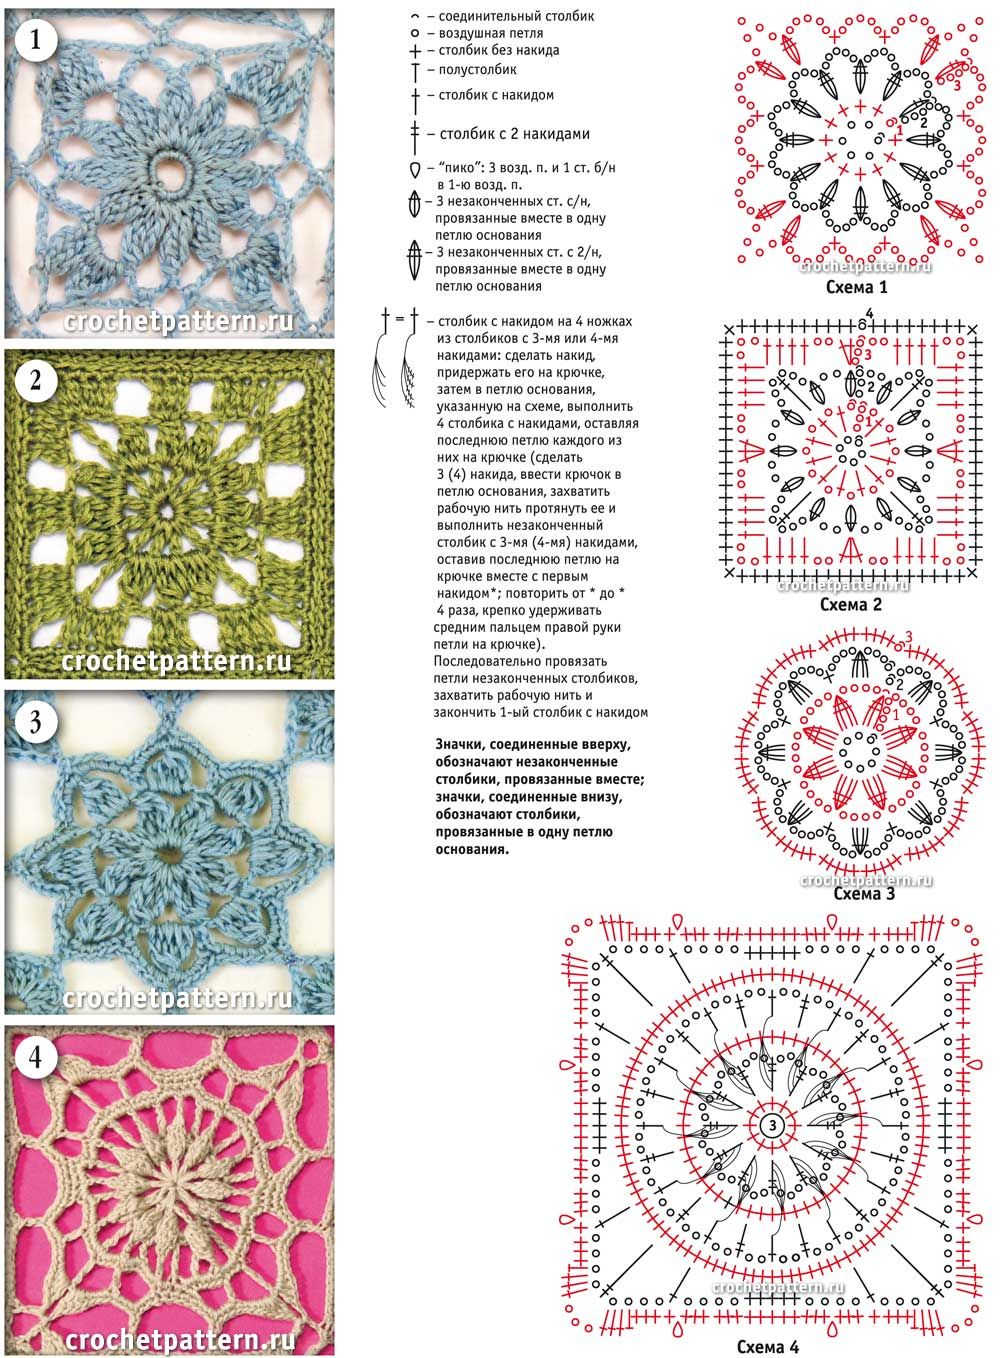 crochet motifs | crochet/knitting library of stitches | Pinterest ...